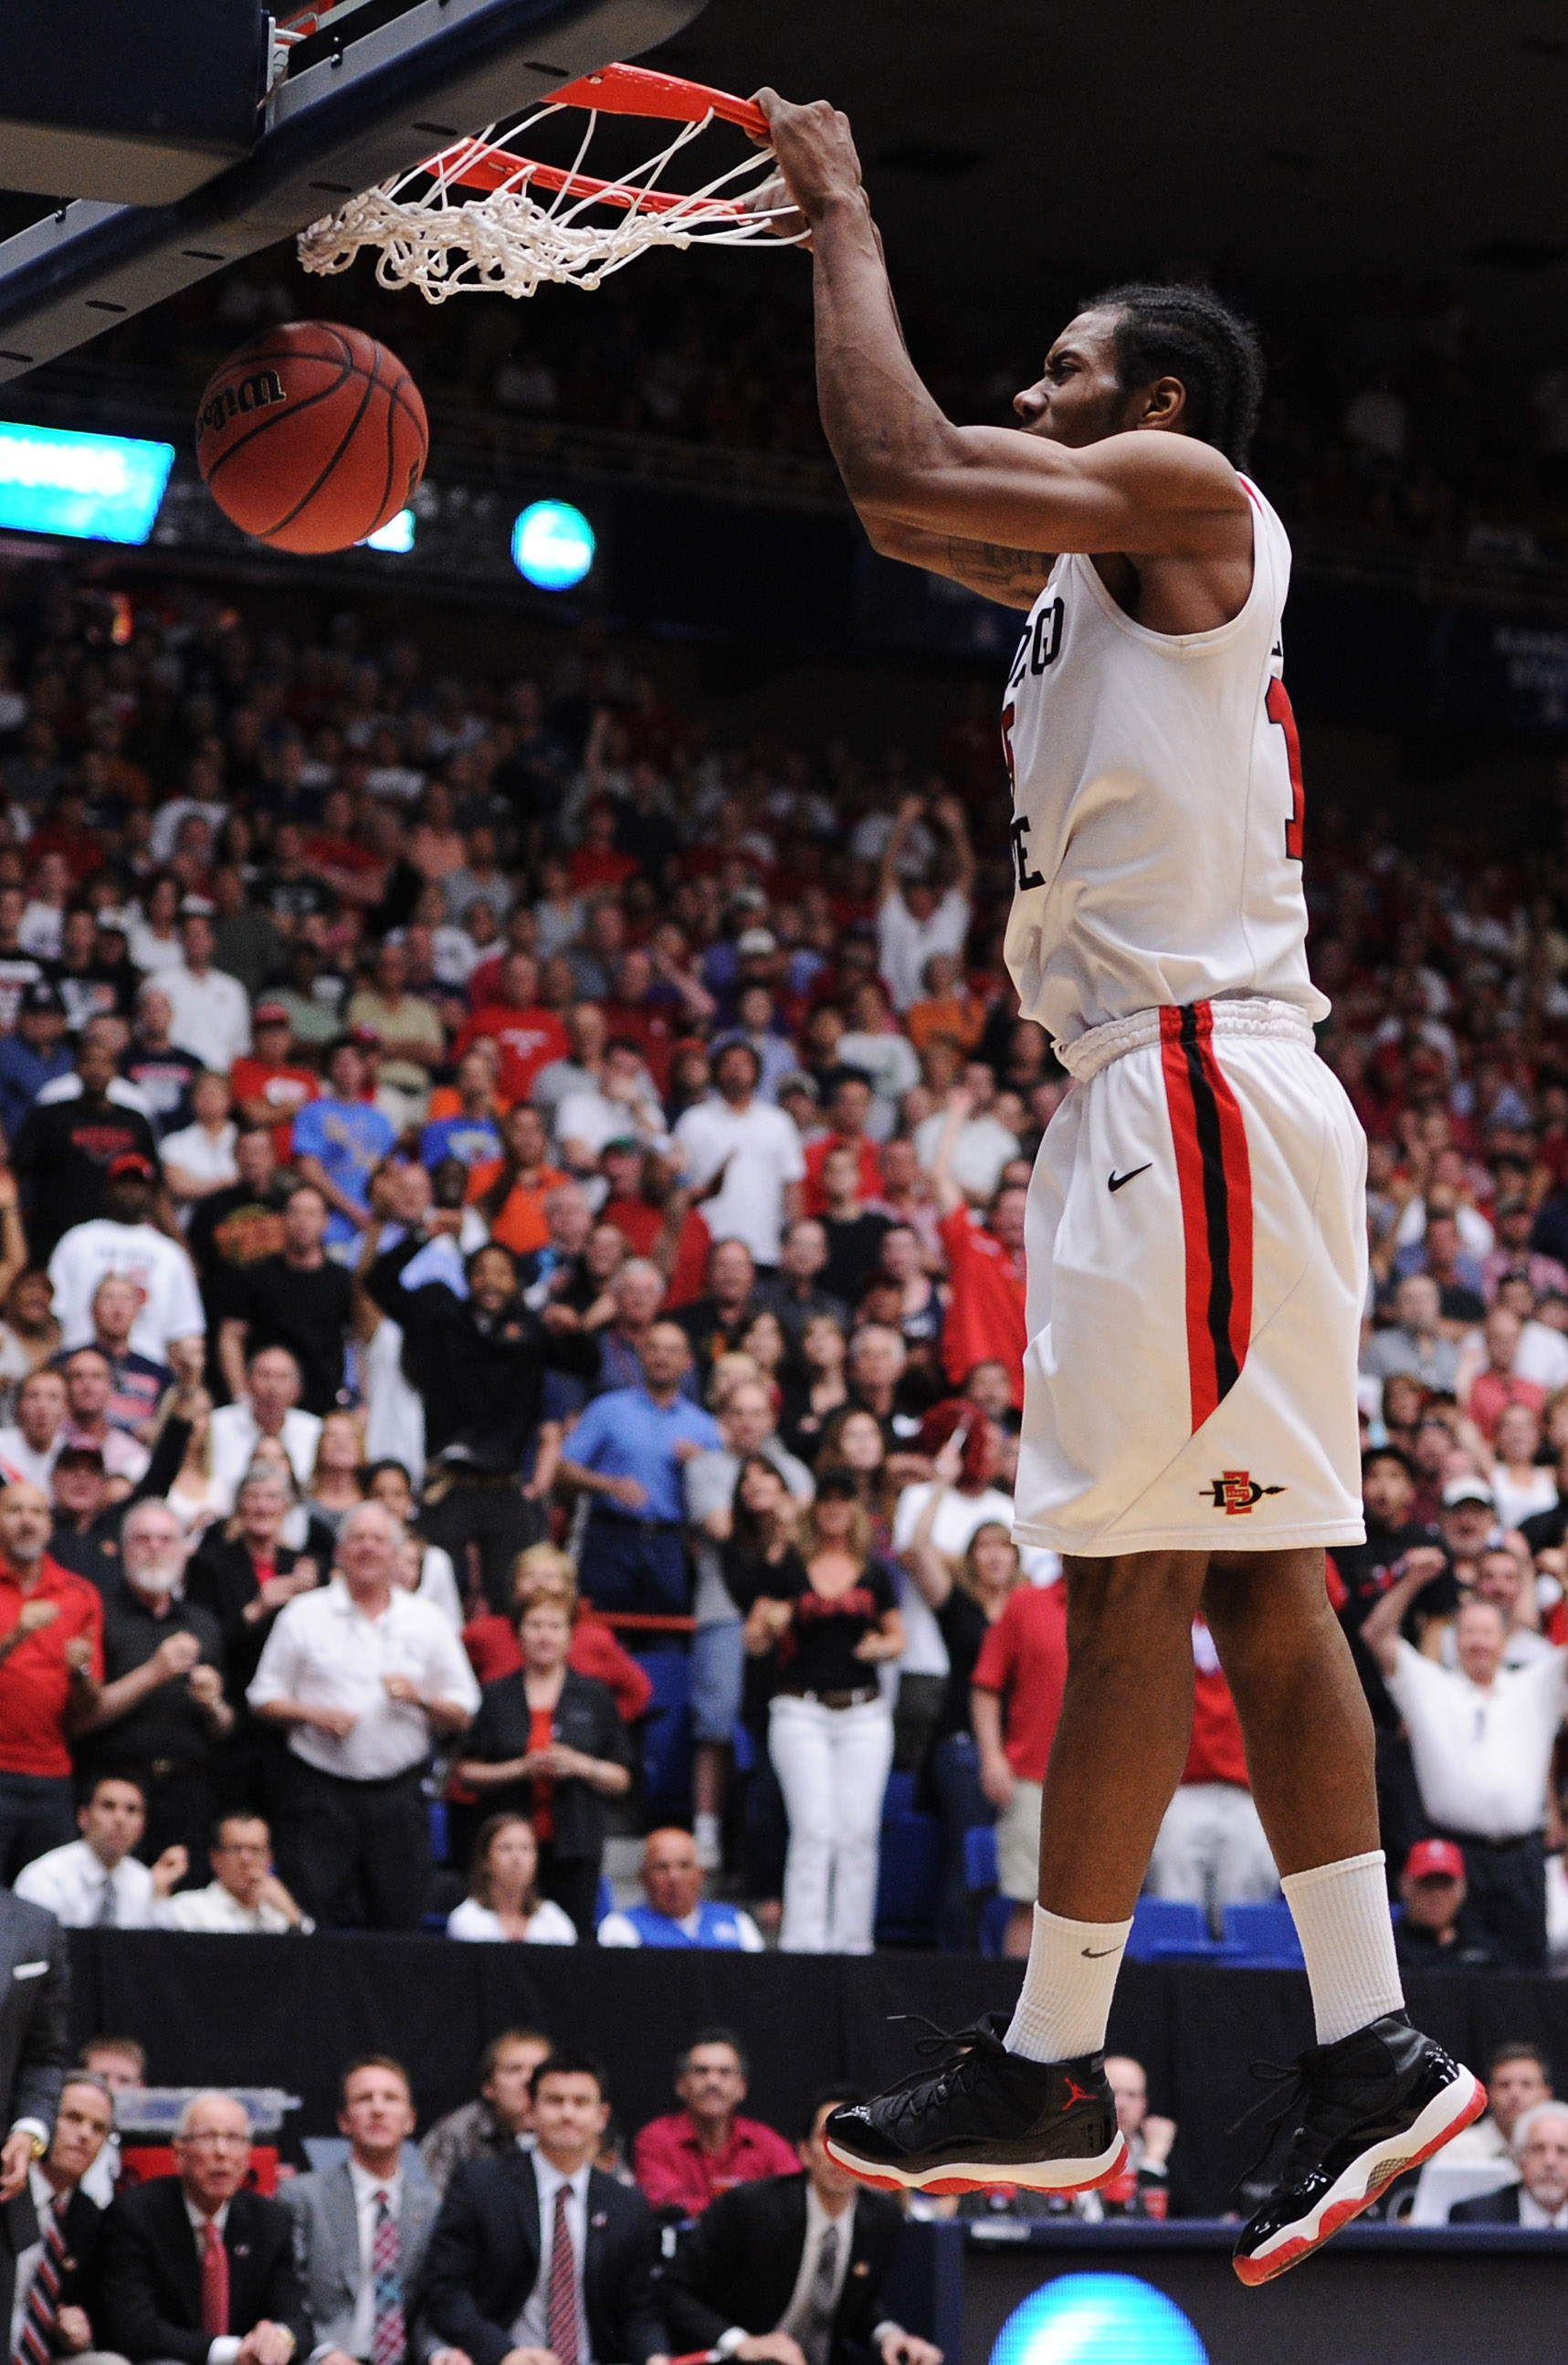 TUCSON, AZ - MARCH 19:  Kawhi Leonard #15 of the San Diego State Aztecs scores the final basket in double overtime against the Temple Owls in the third round of the 2011 NCAA men's basketball tournament at McKale Center on March 19, 2011 in Tucson, Arizon